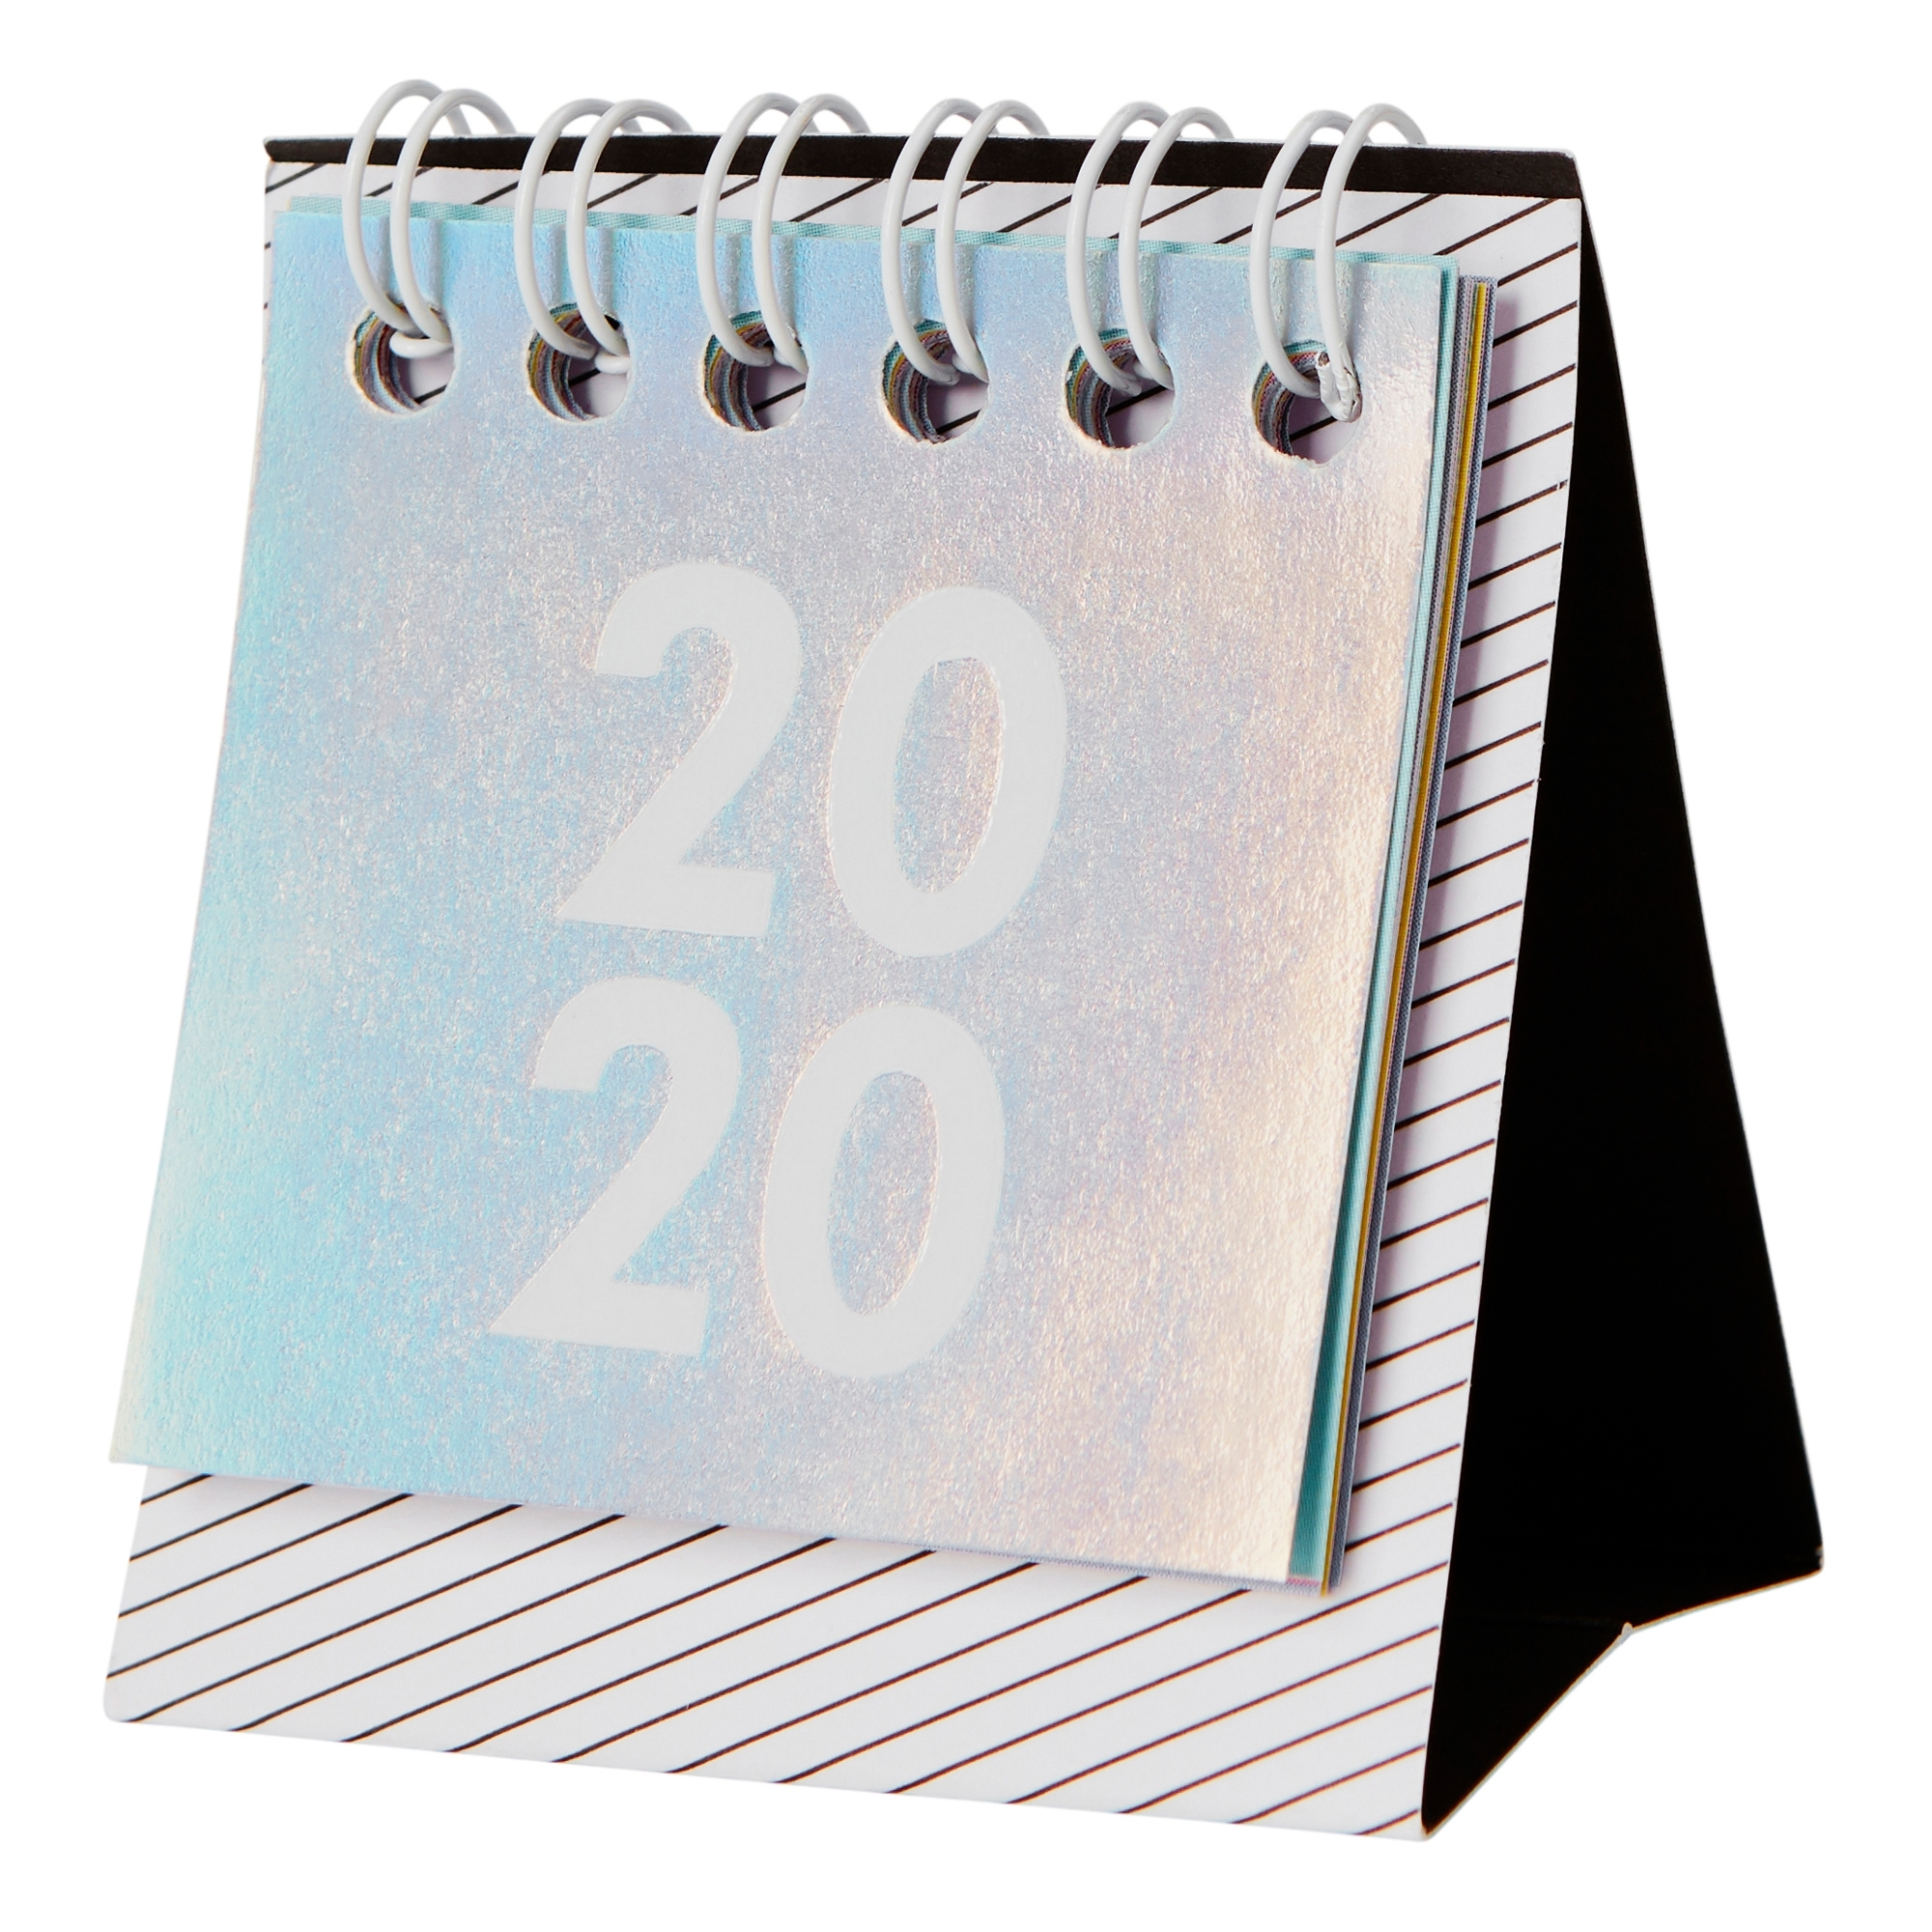 2020 Cute Mini Desk Calendar Holographic: Be Kind